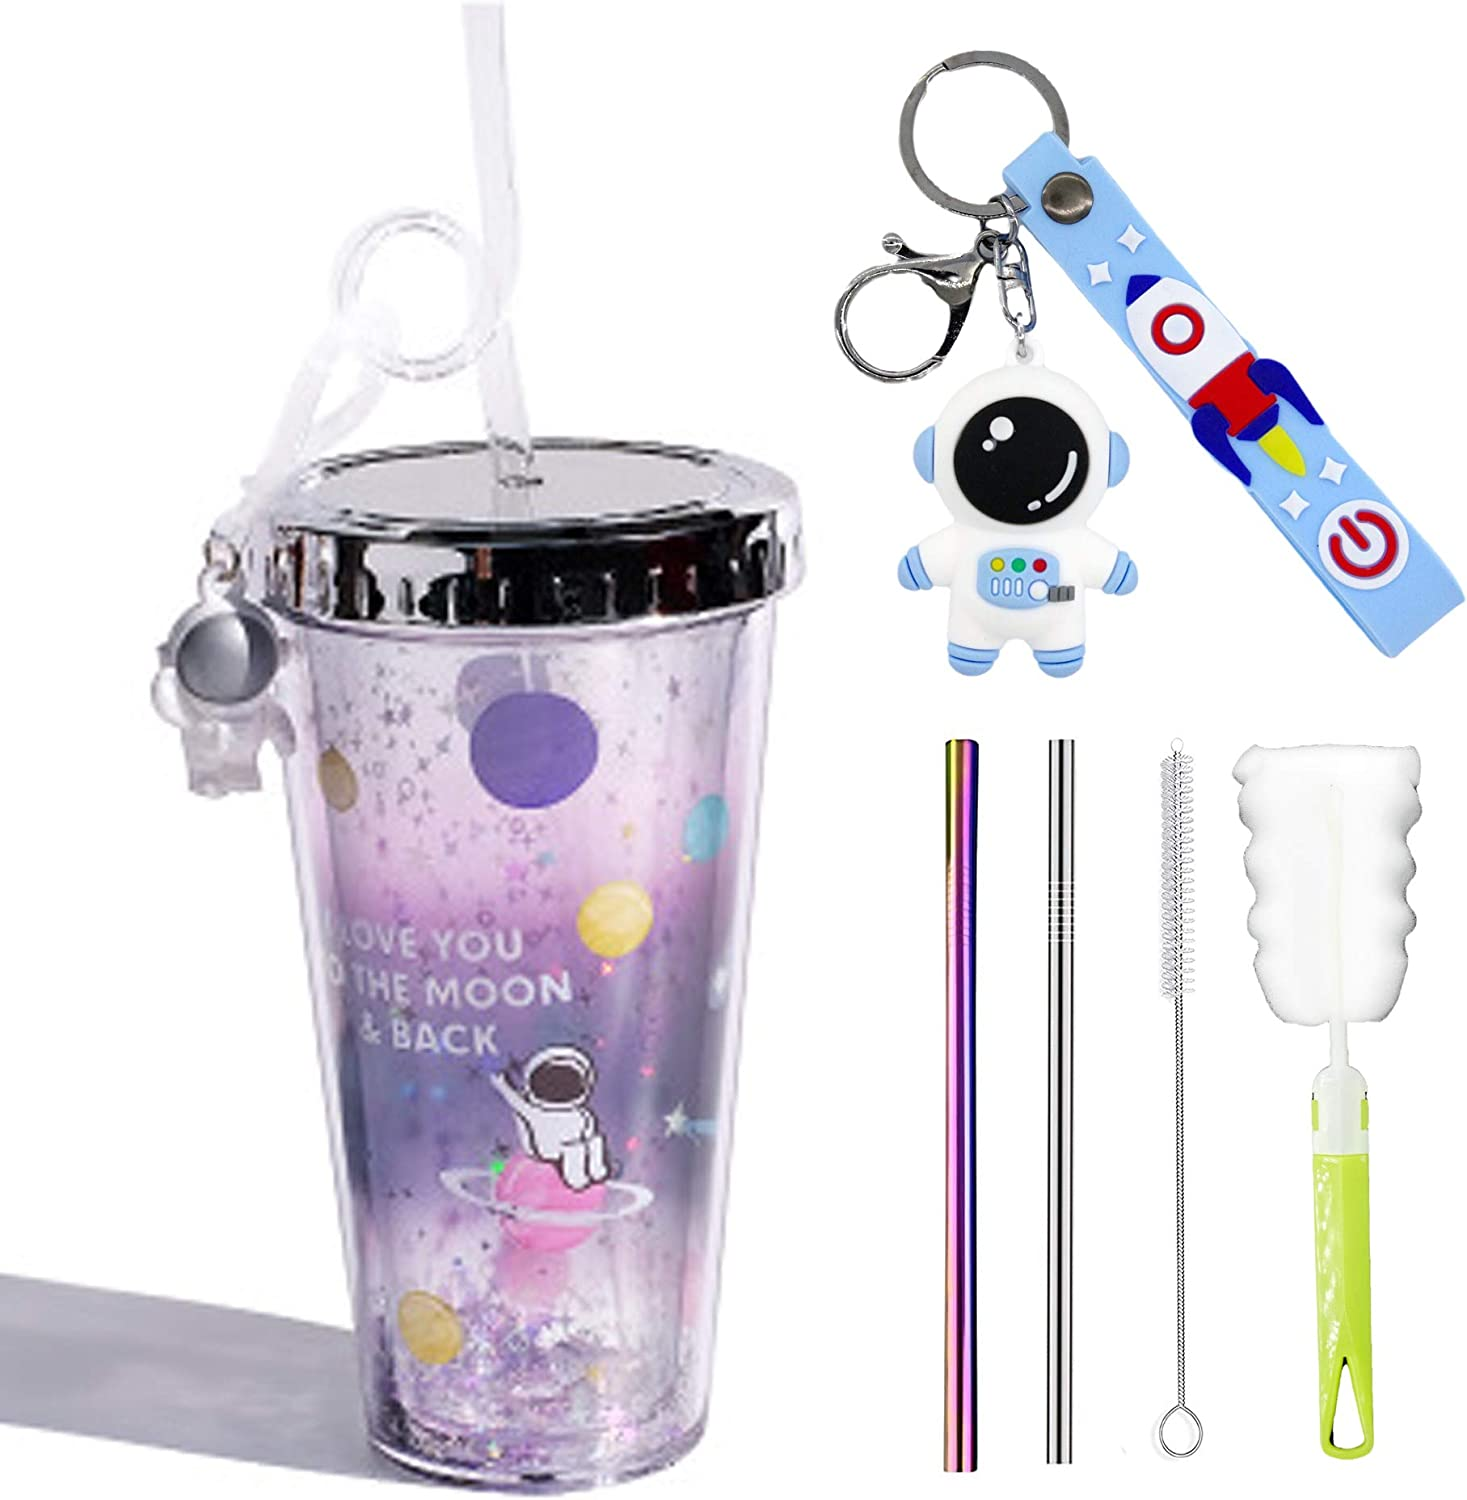 Astronaut Travel Tumblers for kids Cups for adults Space Purple Drinking Cups with straw lid Travel Ice Coffee Trumblers Man Reusable Plastic Cup Water Bottle (Astronaut hello, 420ml)